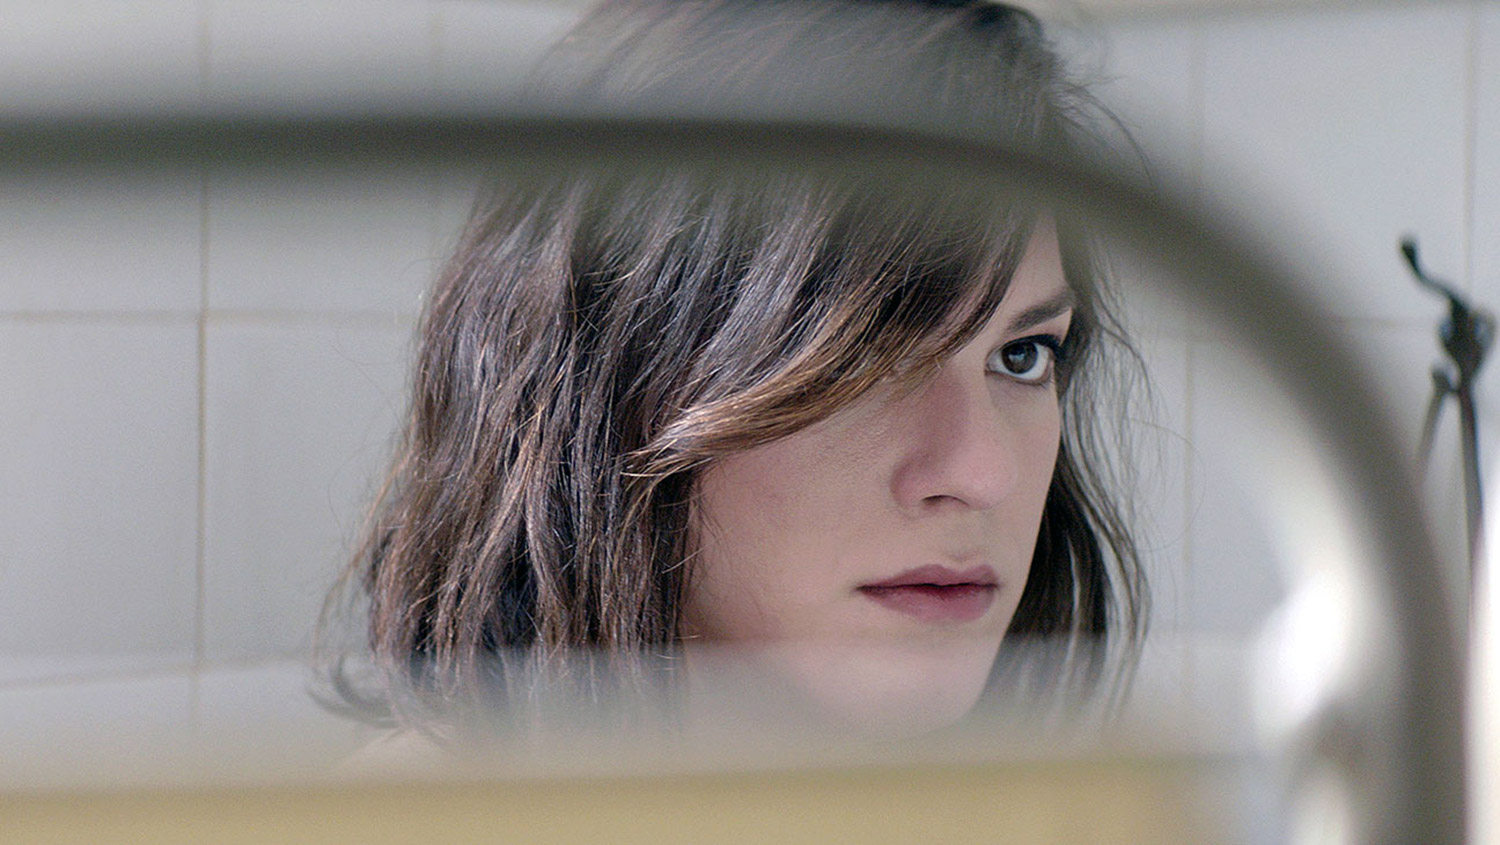 2017 LGBT Films - A Fantastic Woman (transgender), 1